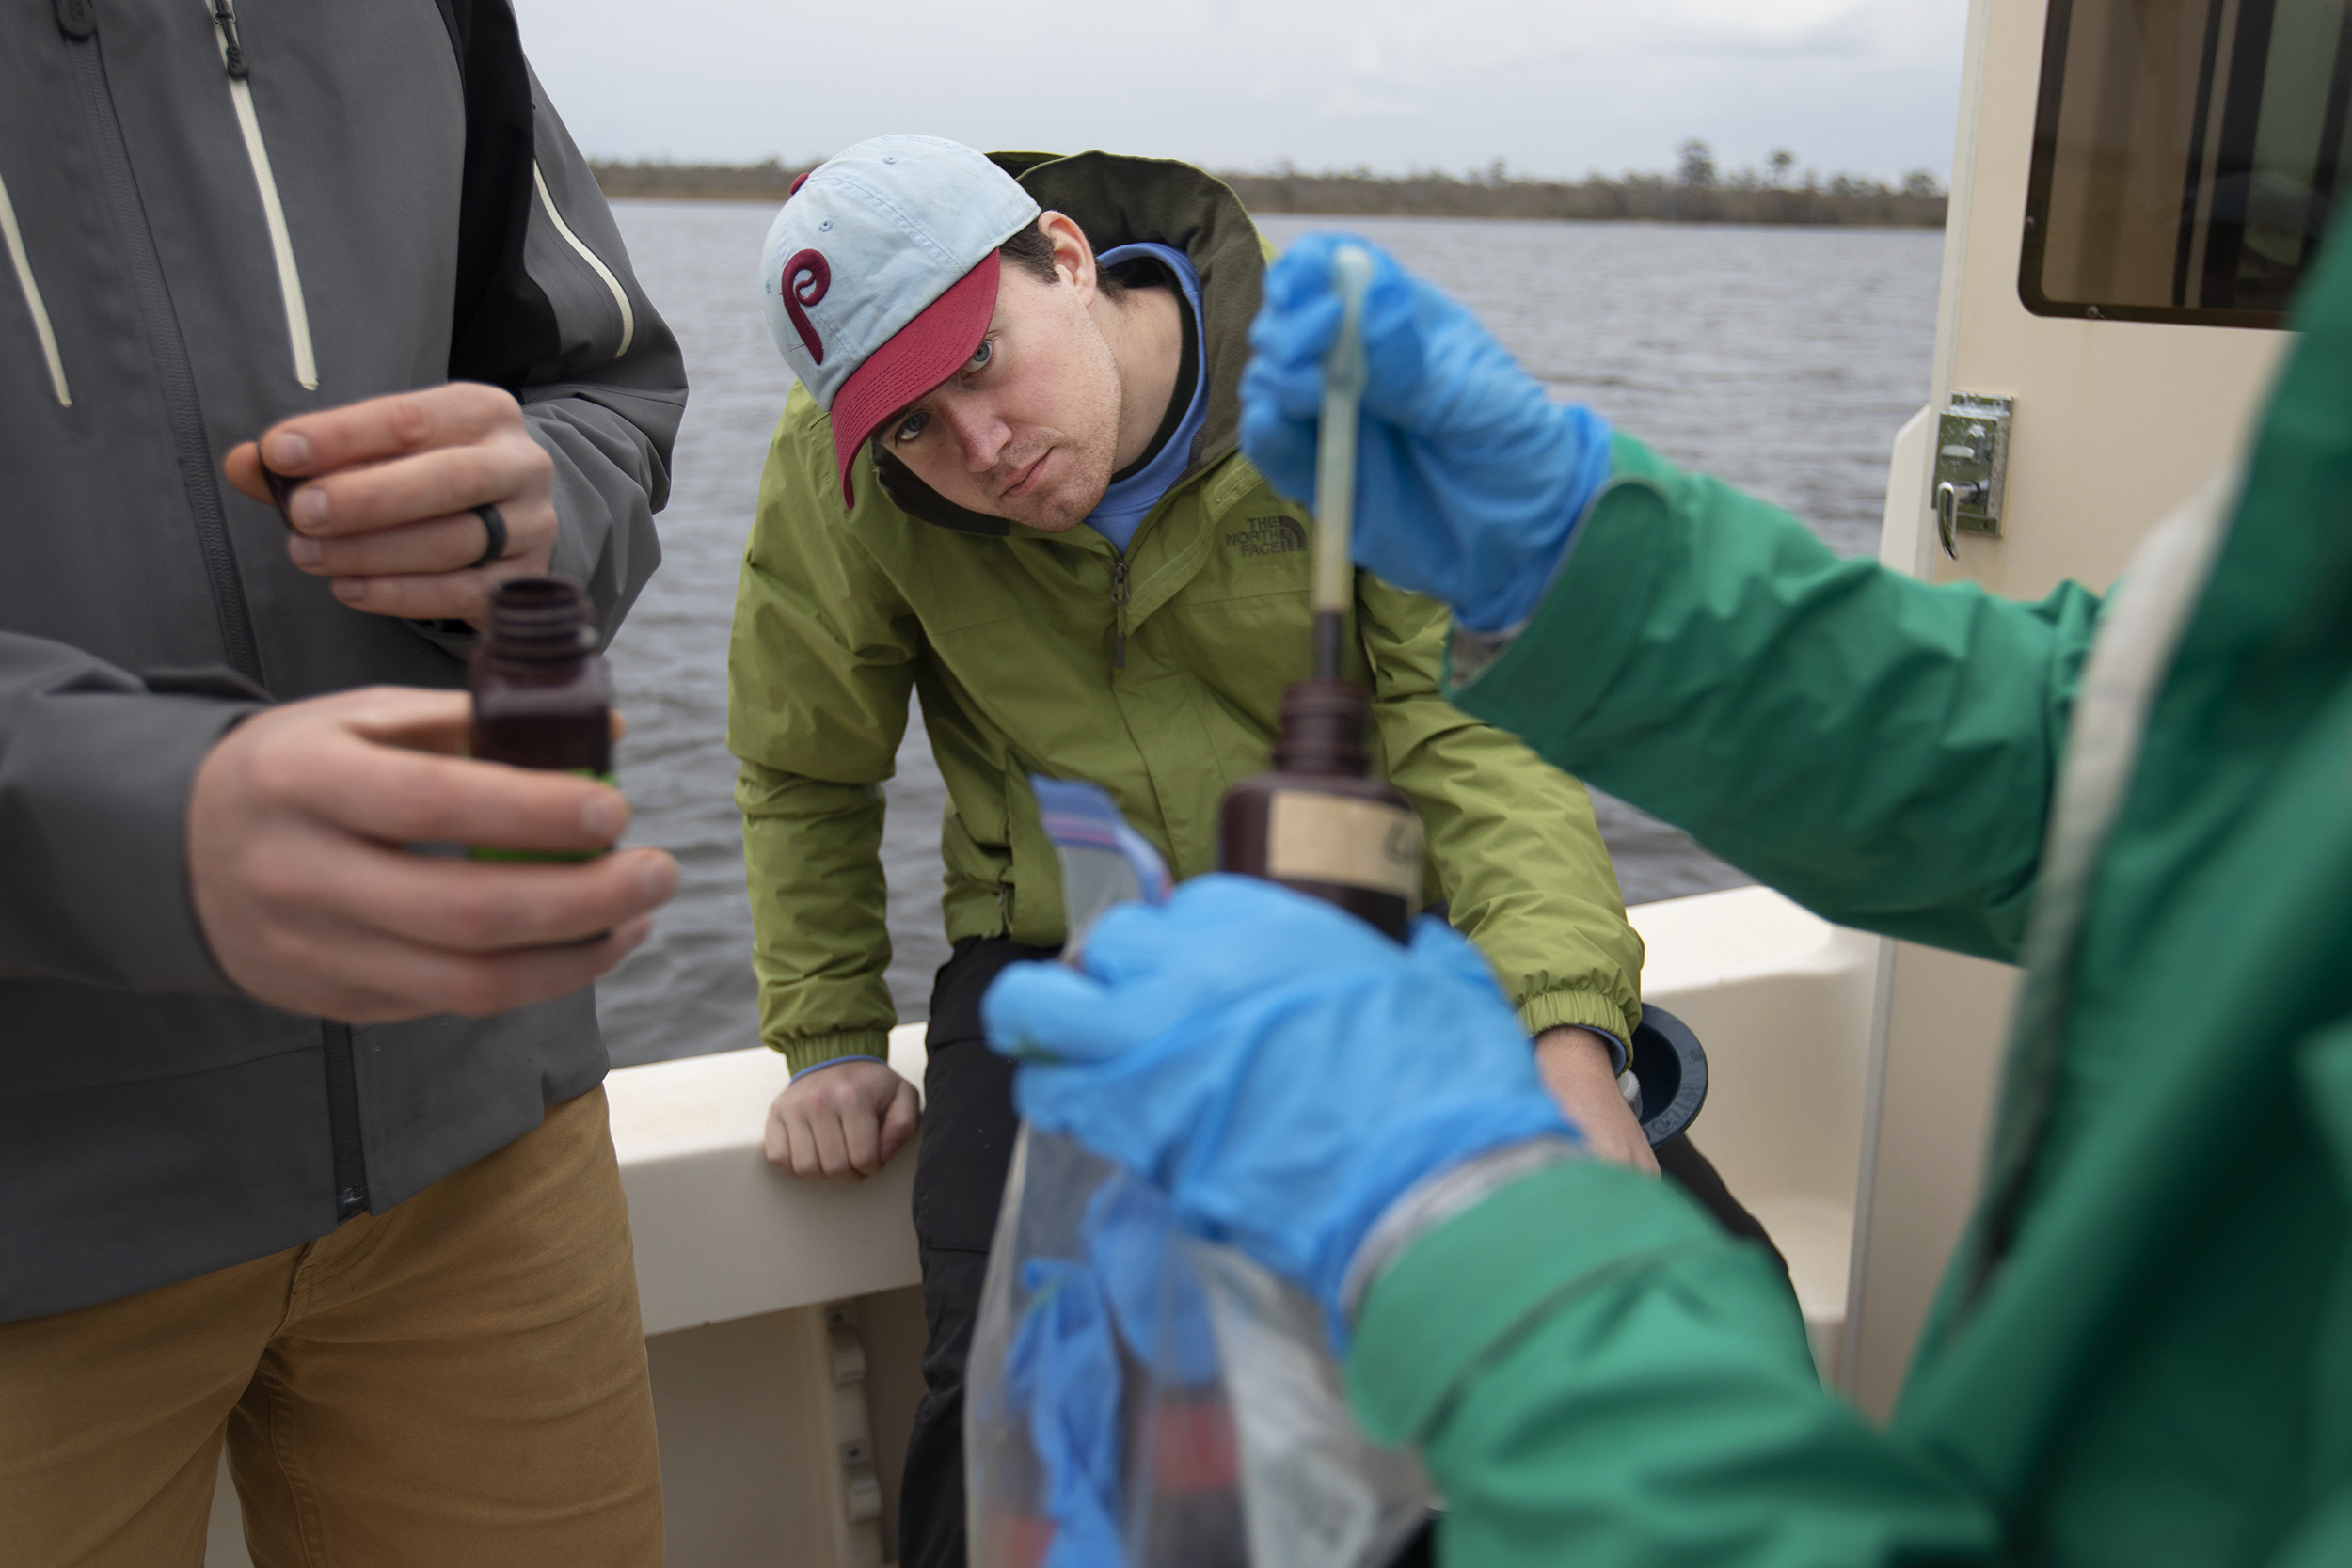 A student sits on the side of the boat and watches as two classmates use droppers to put a solution from one small bottle to another.